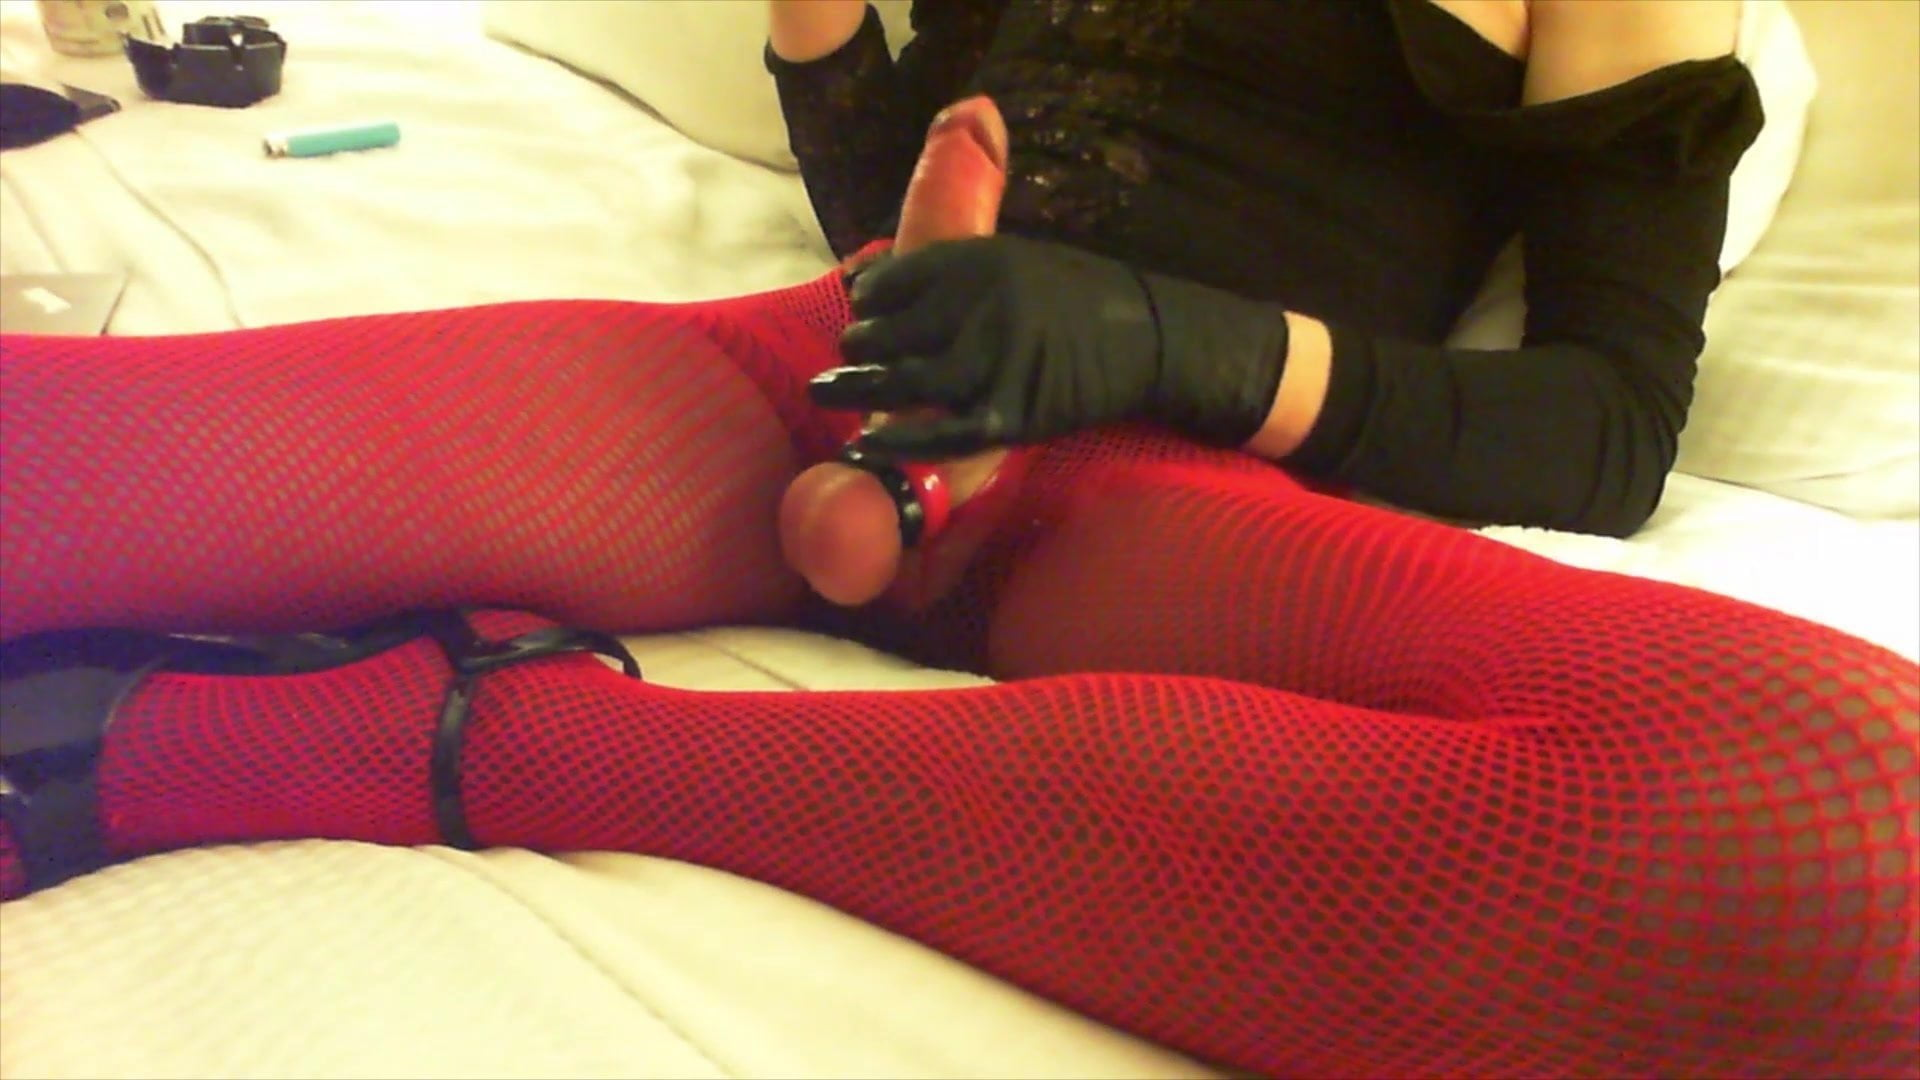 Smoking and stroking in fishnets